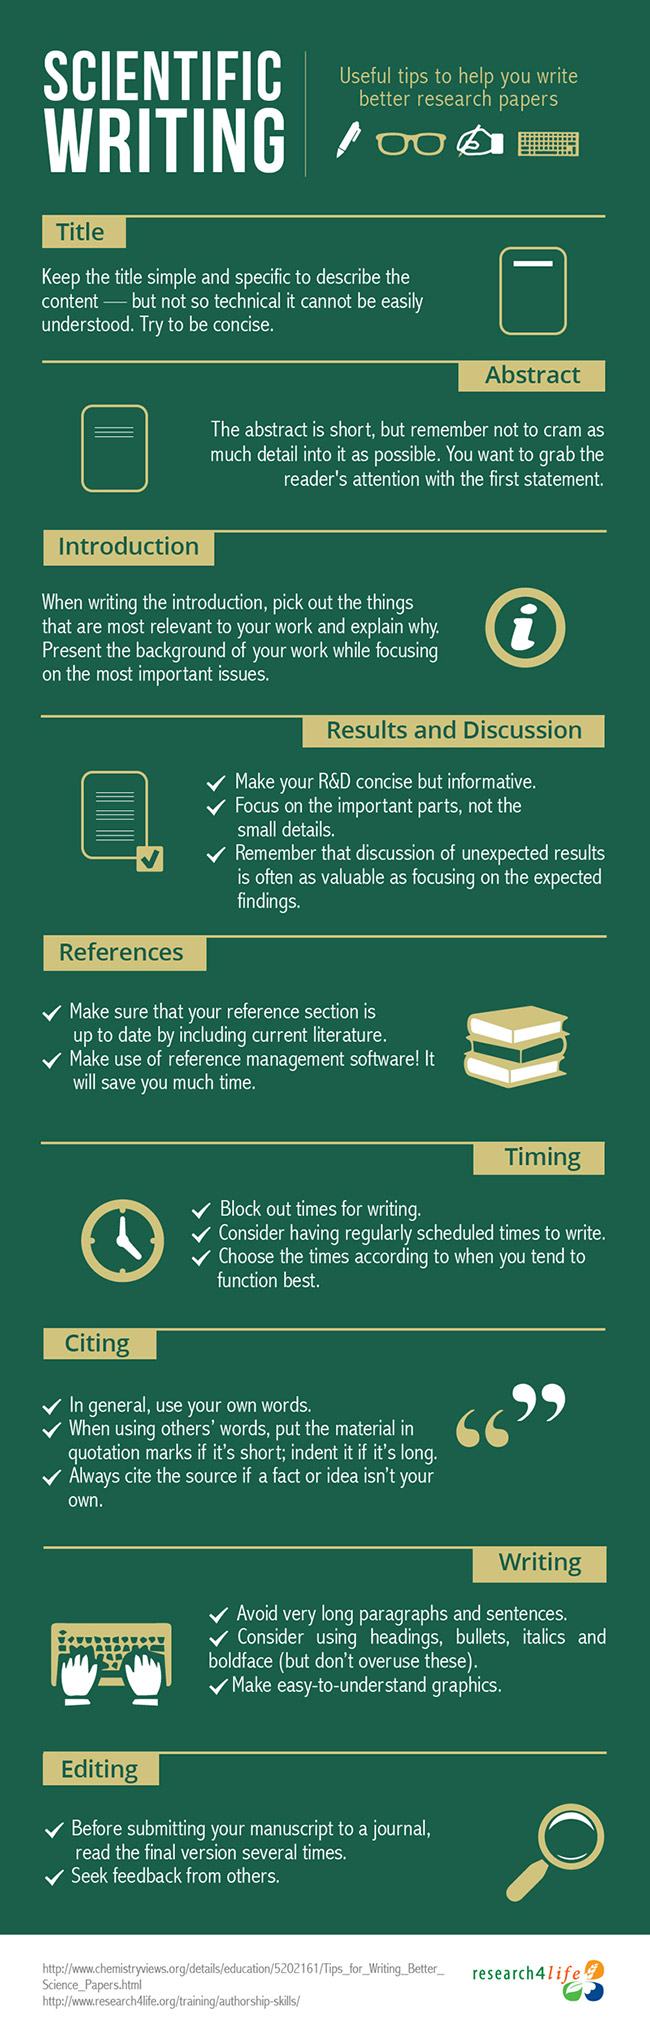 018 How To Write Research Paper Fast And Easy Infographic Science Writing Singular A Full